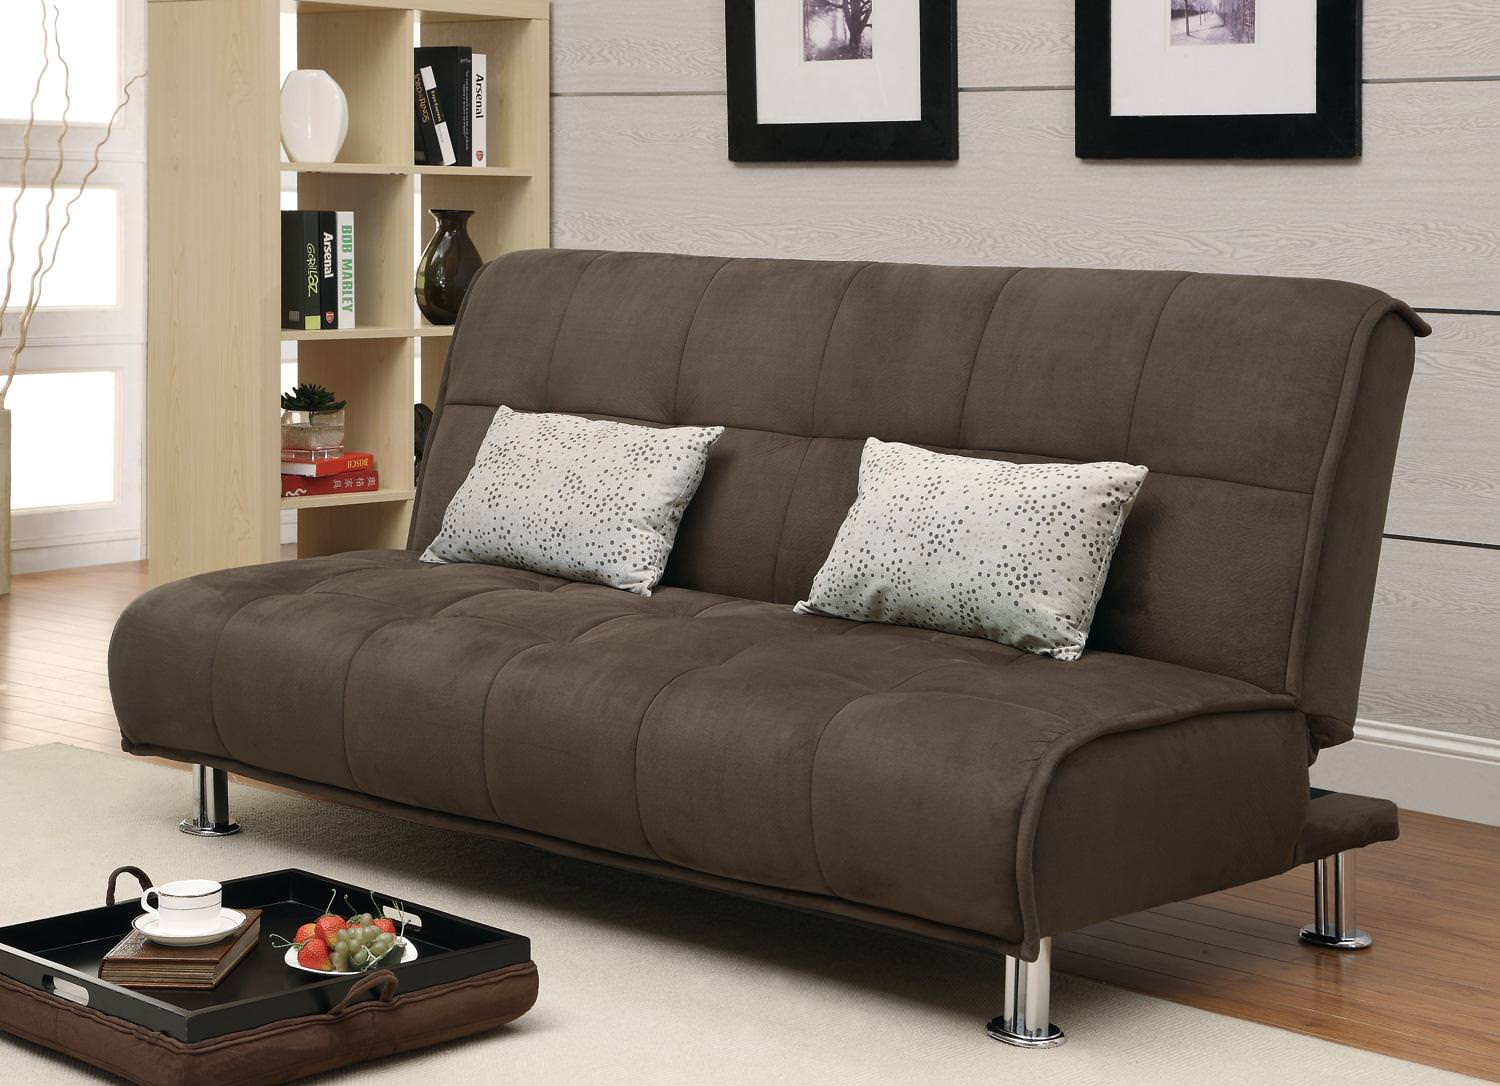 300276 Sofa Bed Brown By Coaster